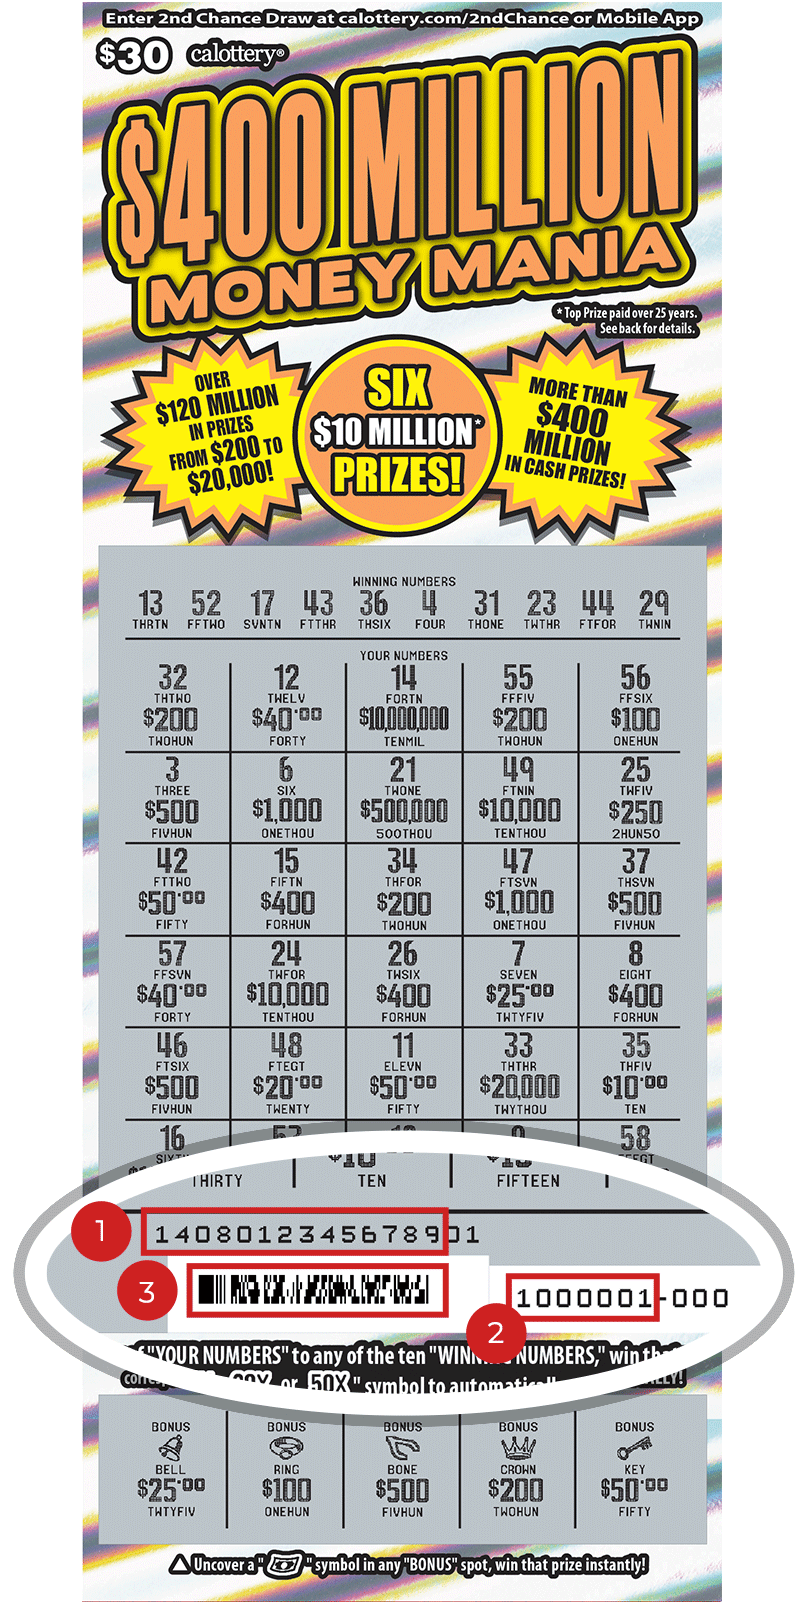 Image of a Scratched $30 $400 Million Money Mania Scratcher showing a circle in the lower part of the ticket which highlights the placement of the three items listed in the legend below. #1 is the Entry Code (use the first 13 digits only). #2 is the Ticket ID (use the first 7 digits only). #3 is the barcode which can be scanned to use Check-a-Ticket or enter 2nd Chance.